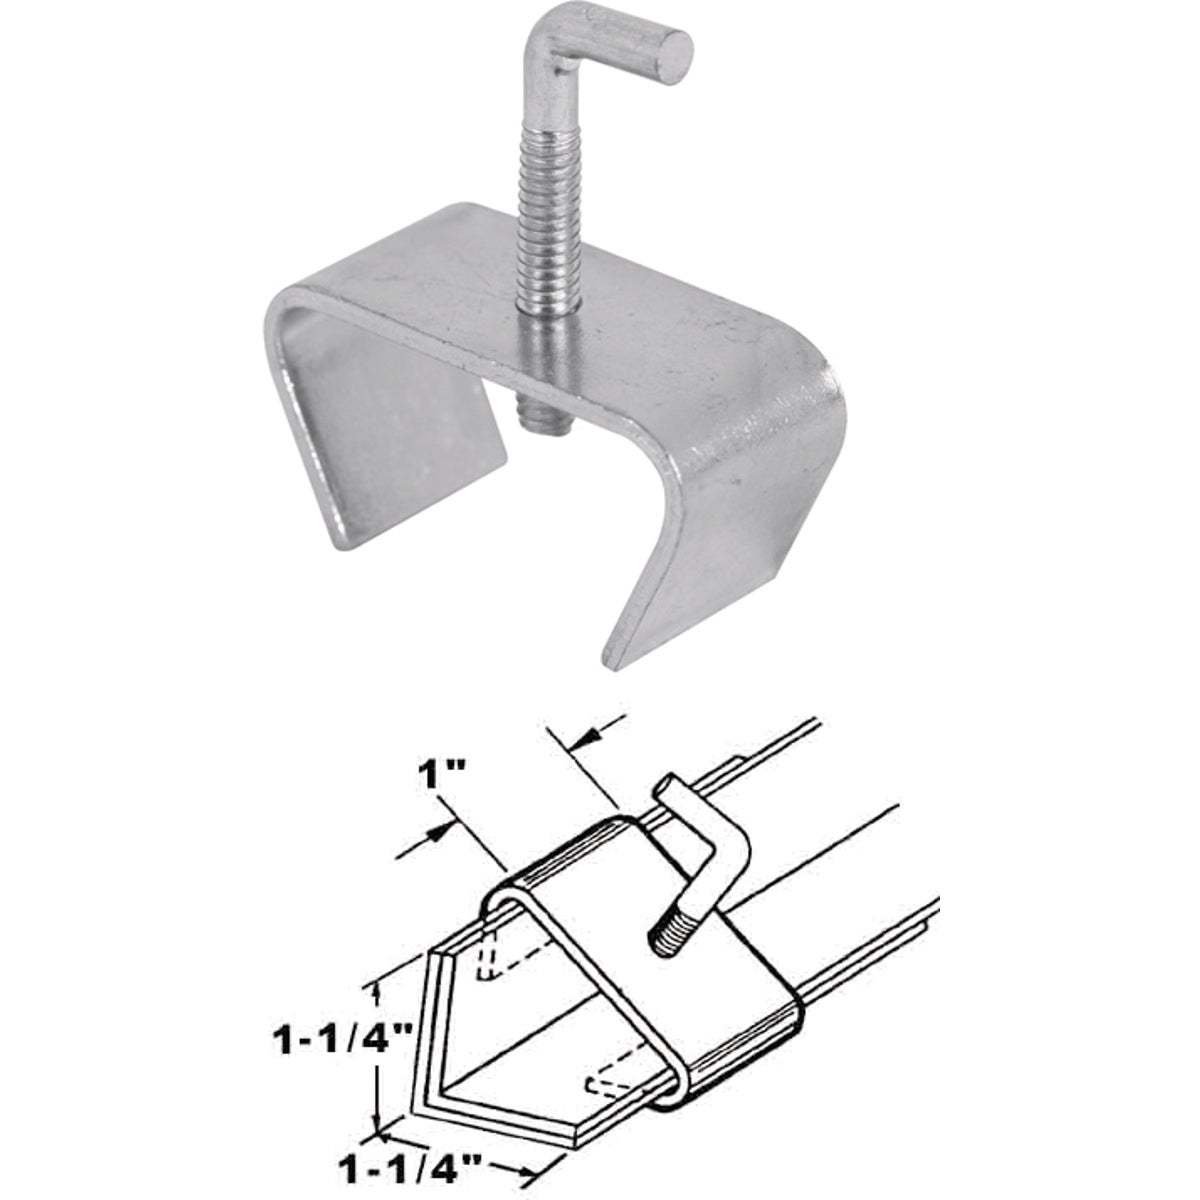 "1-1/4"" BEDFRM RAIL CLAMP"